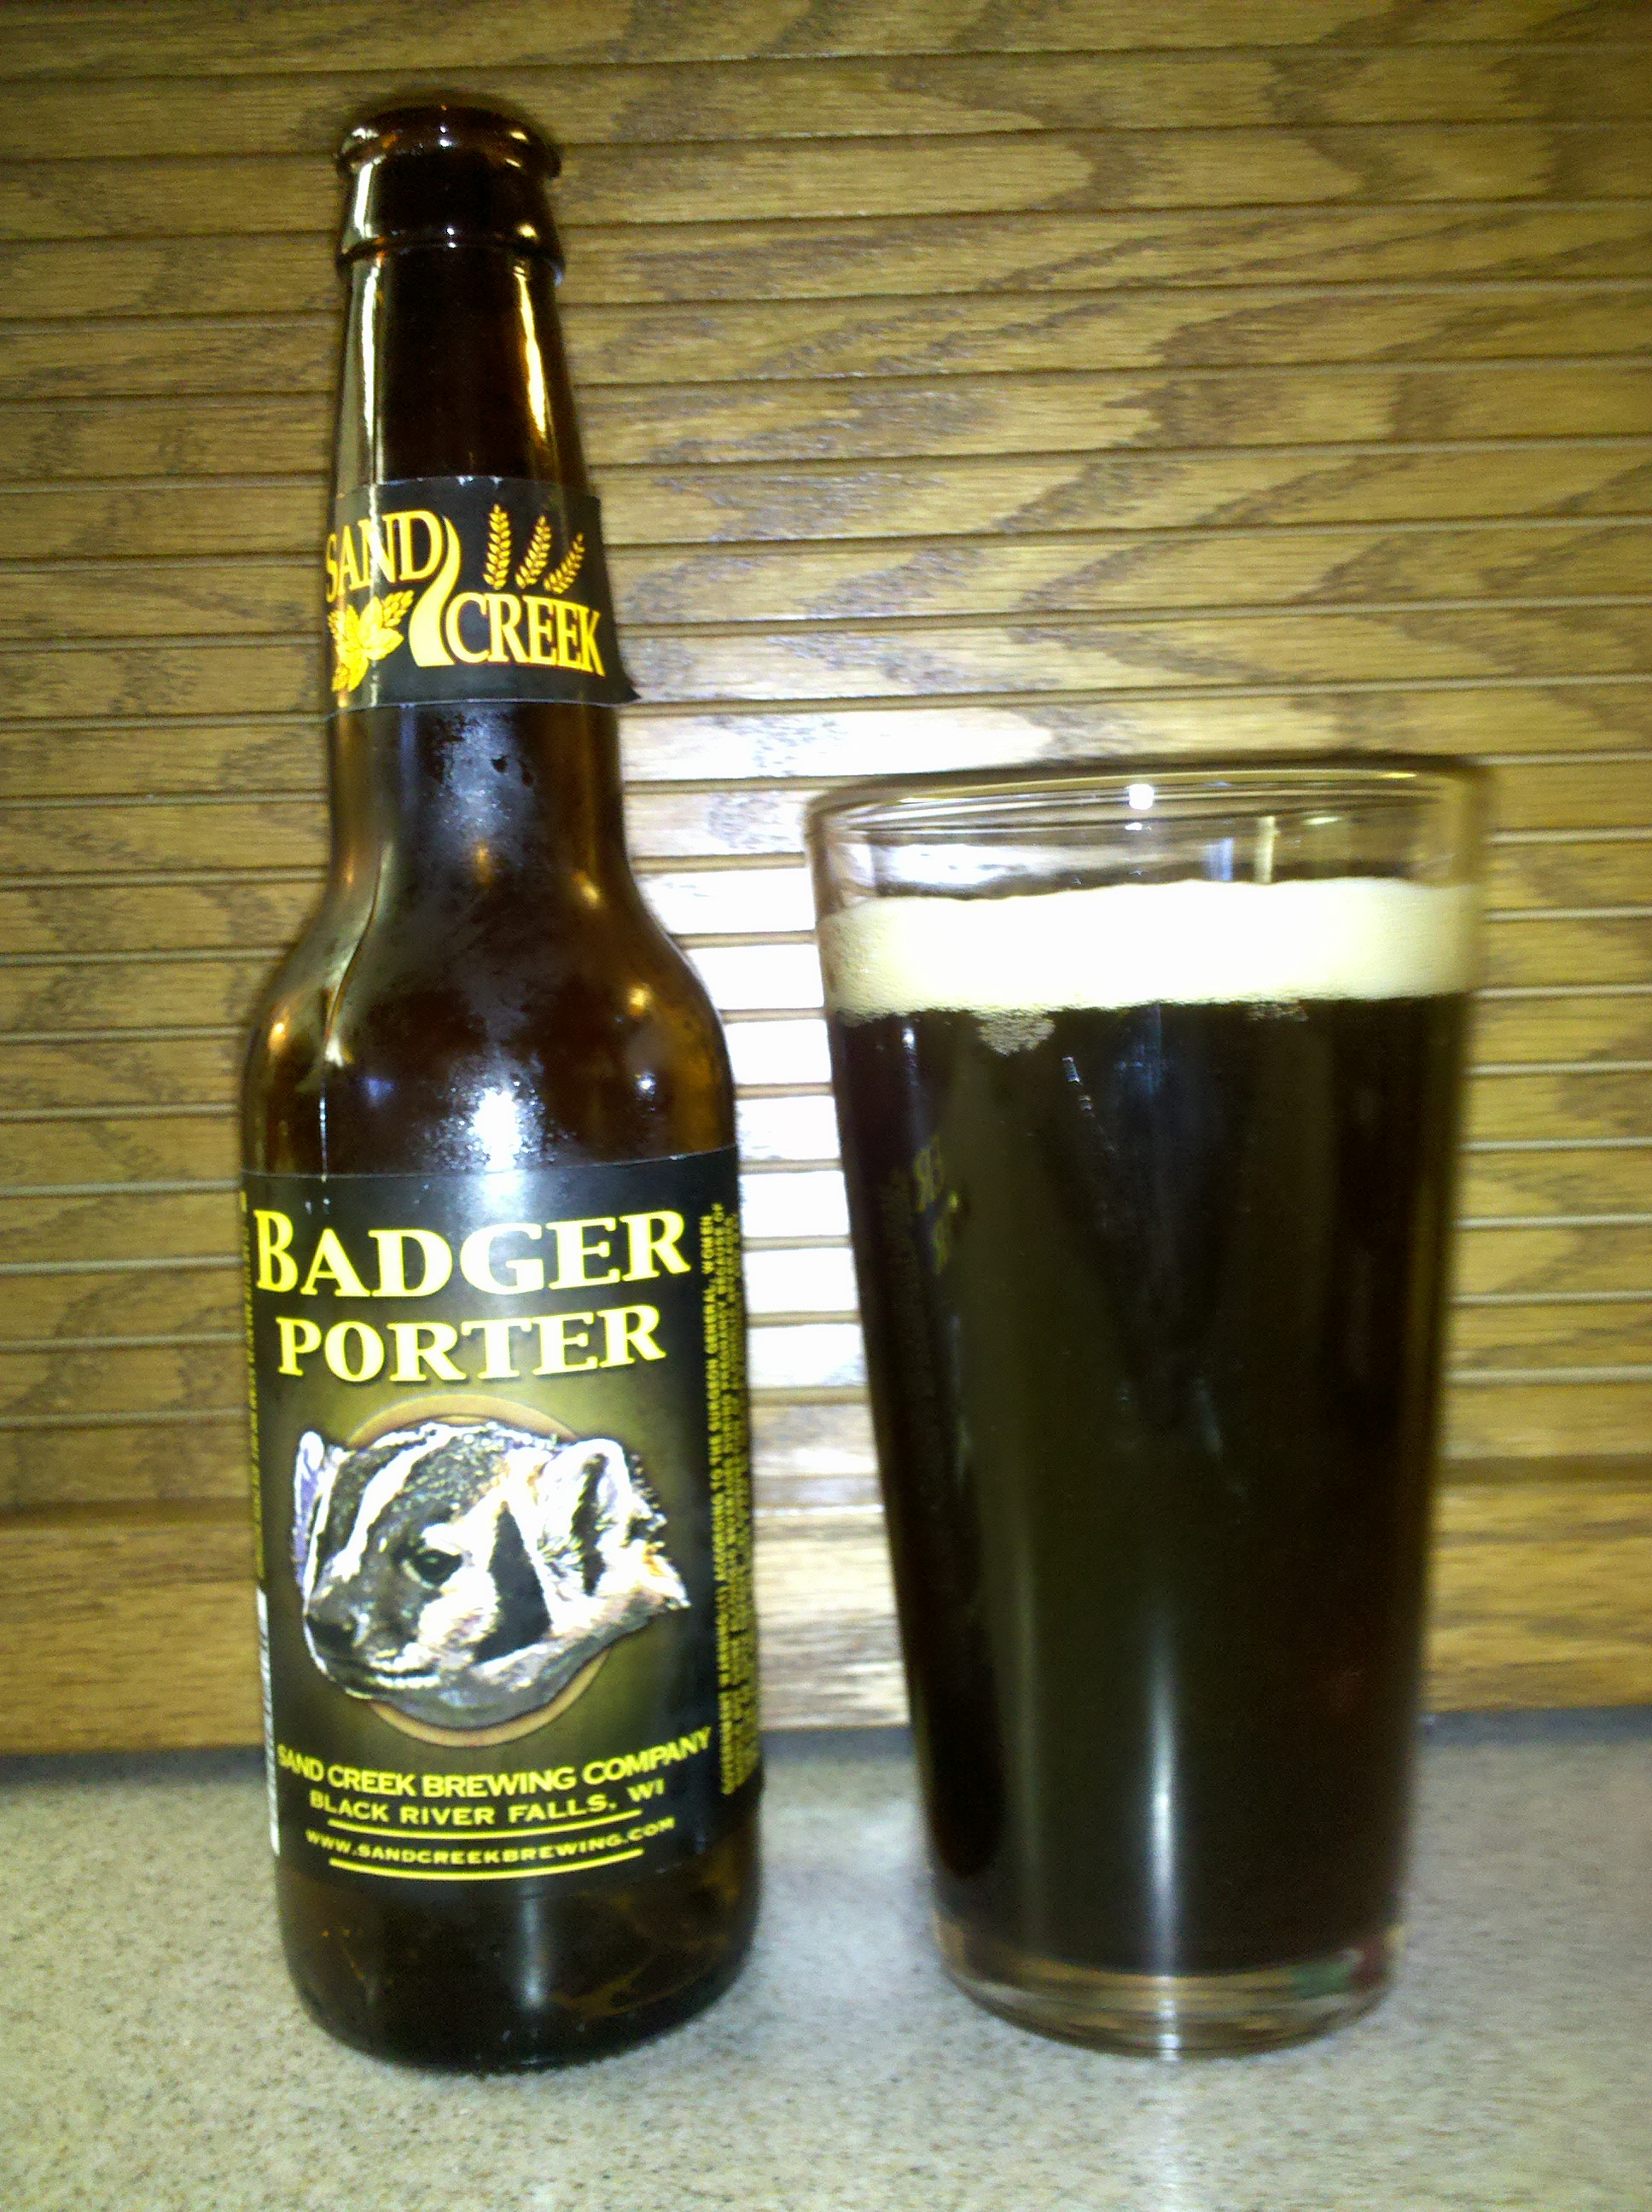 Sand Creek Badger Porter